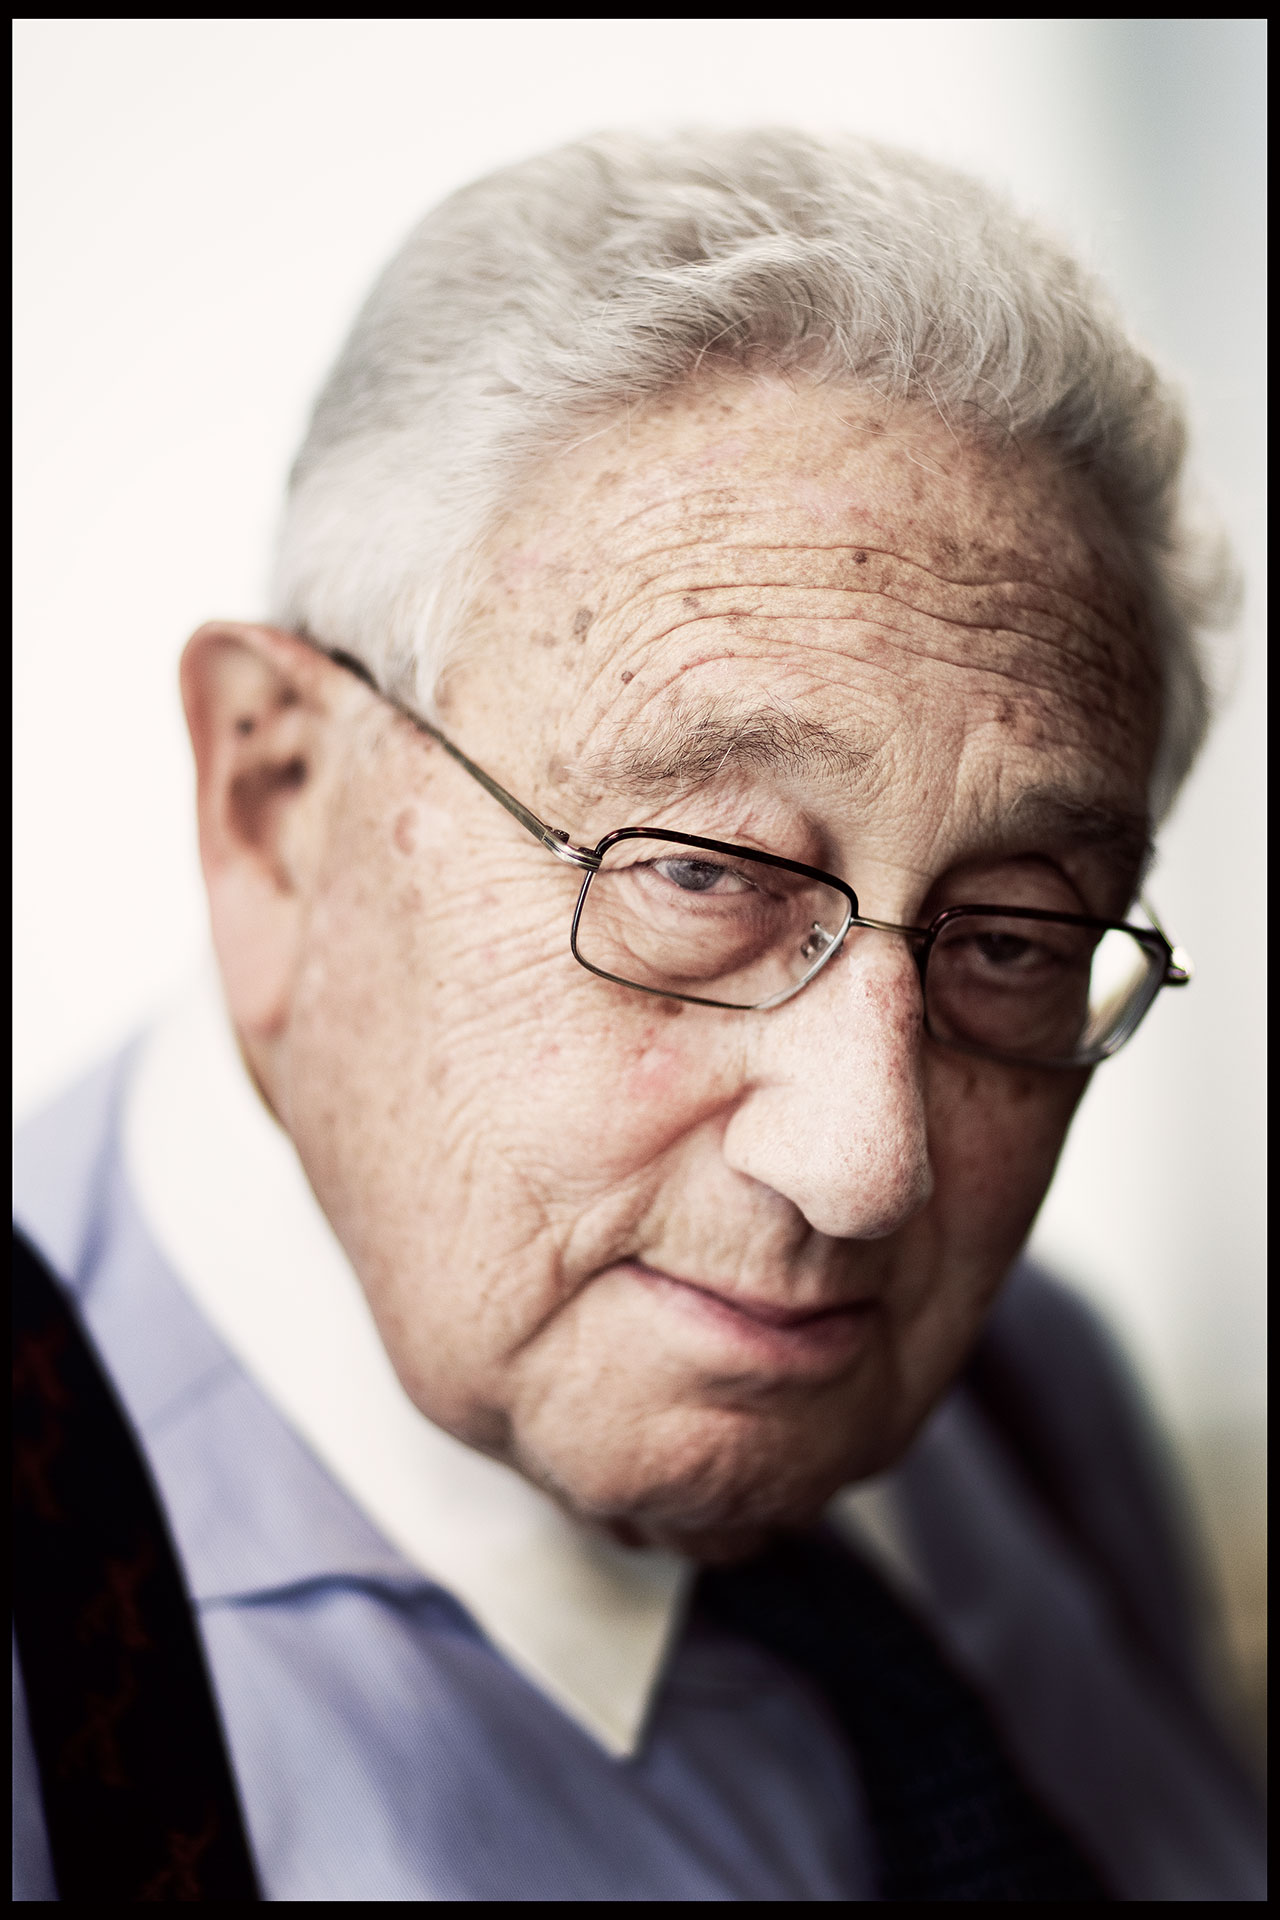 henry_kissinger_may_11-01